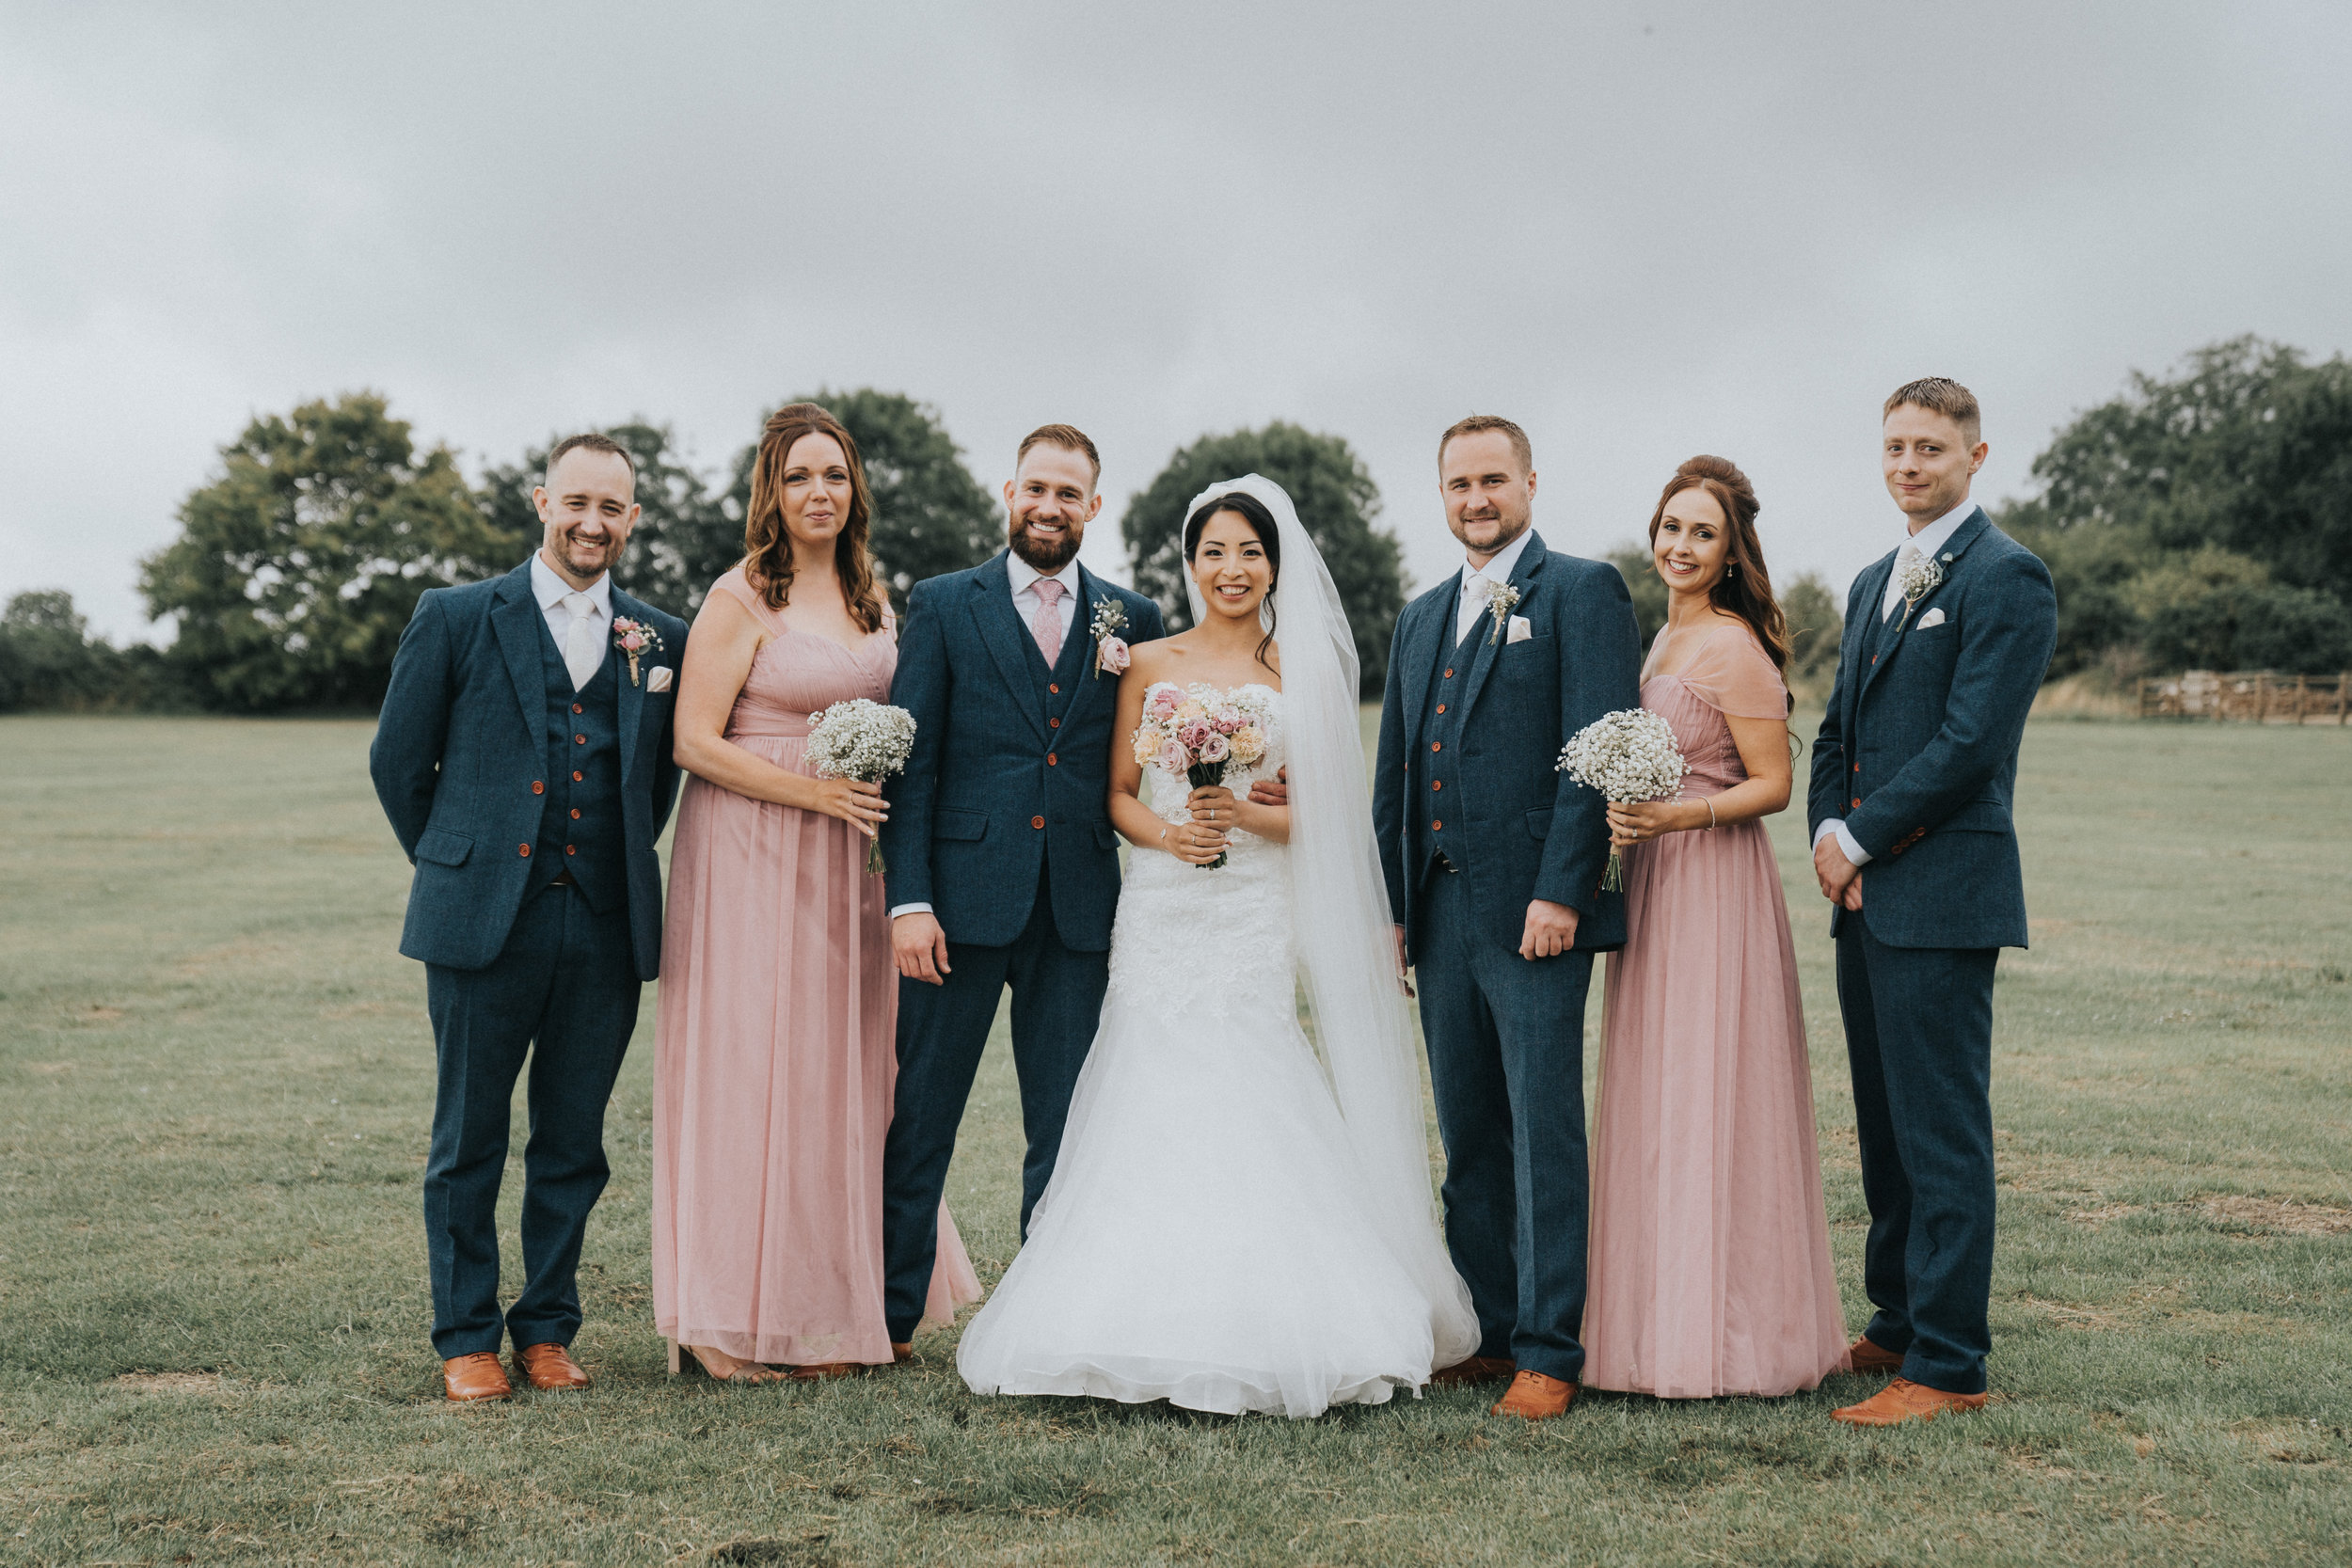 bedfordshire-london-wedding-photographer-videographer-309